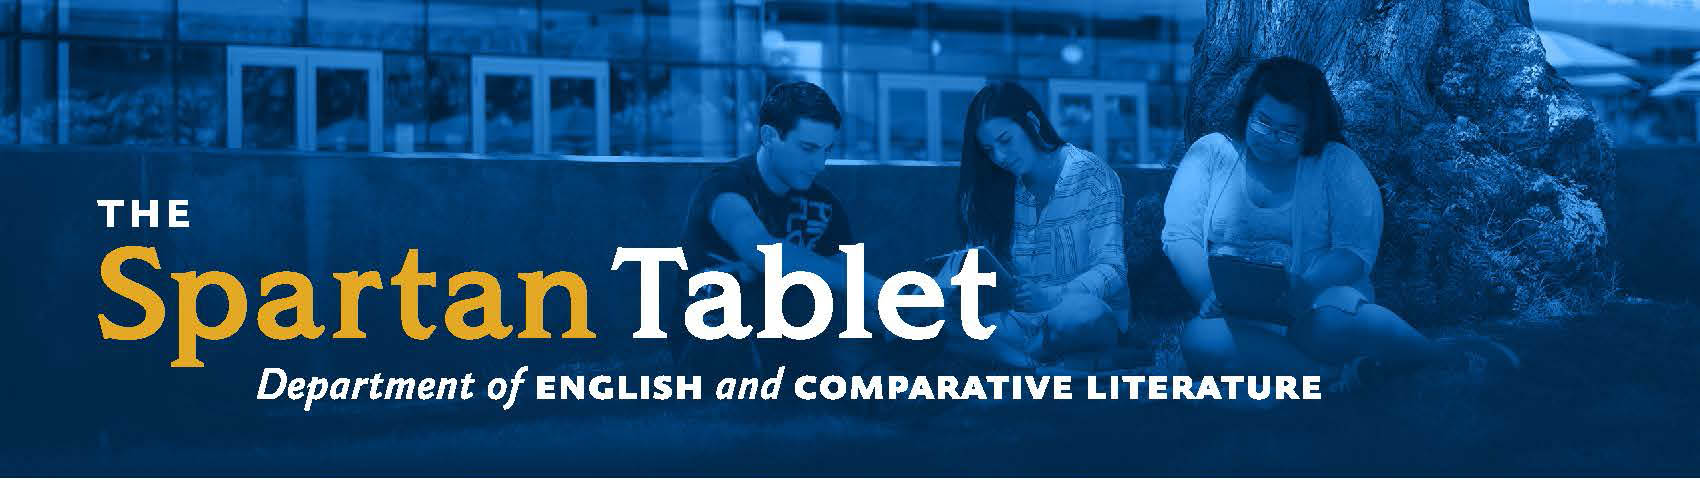 The Spartan Tablet (Department of English and Comparative Literature)